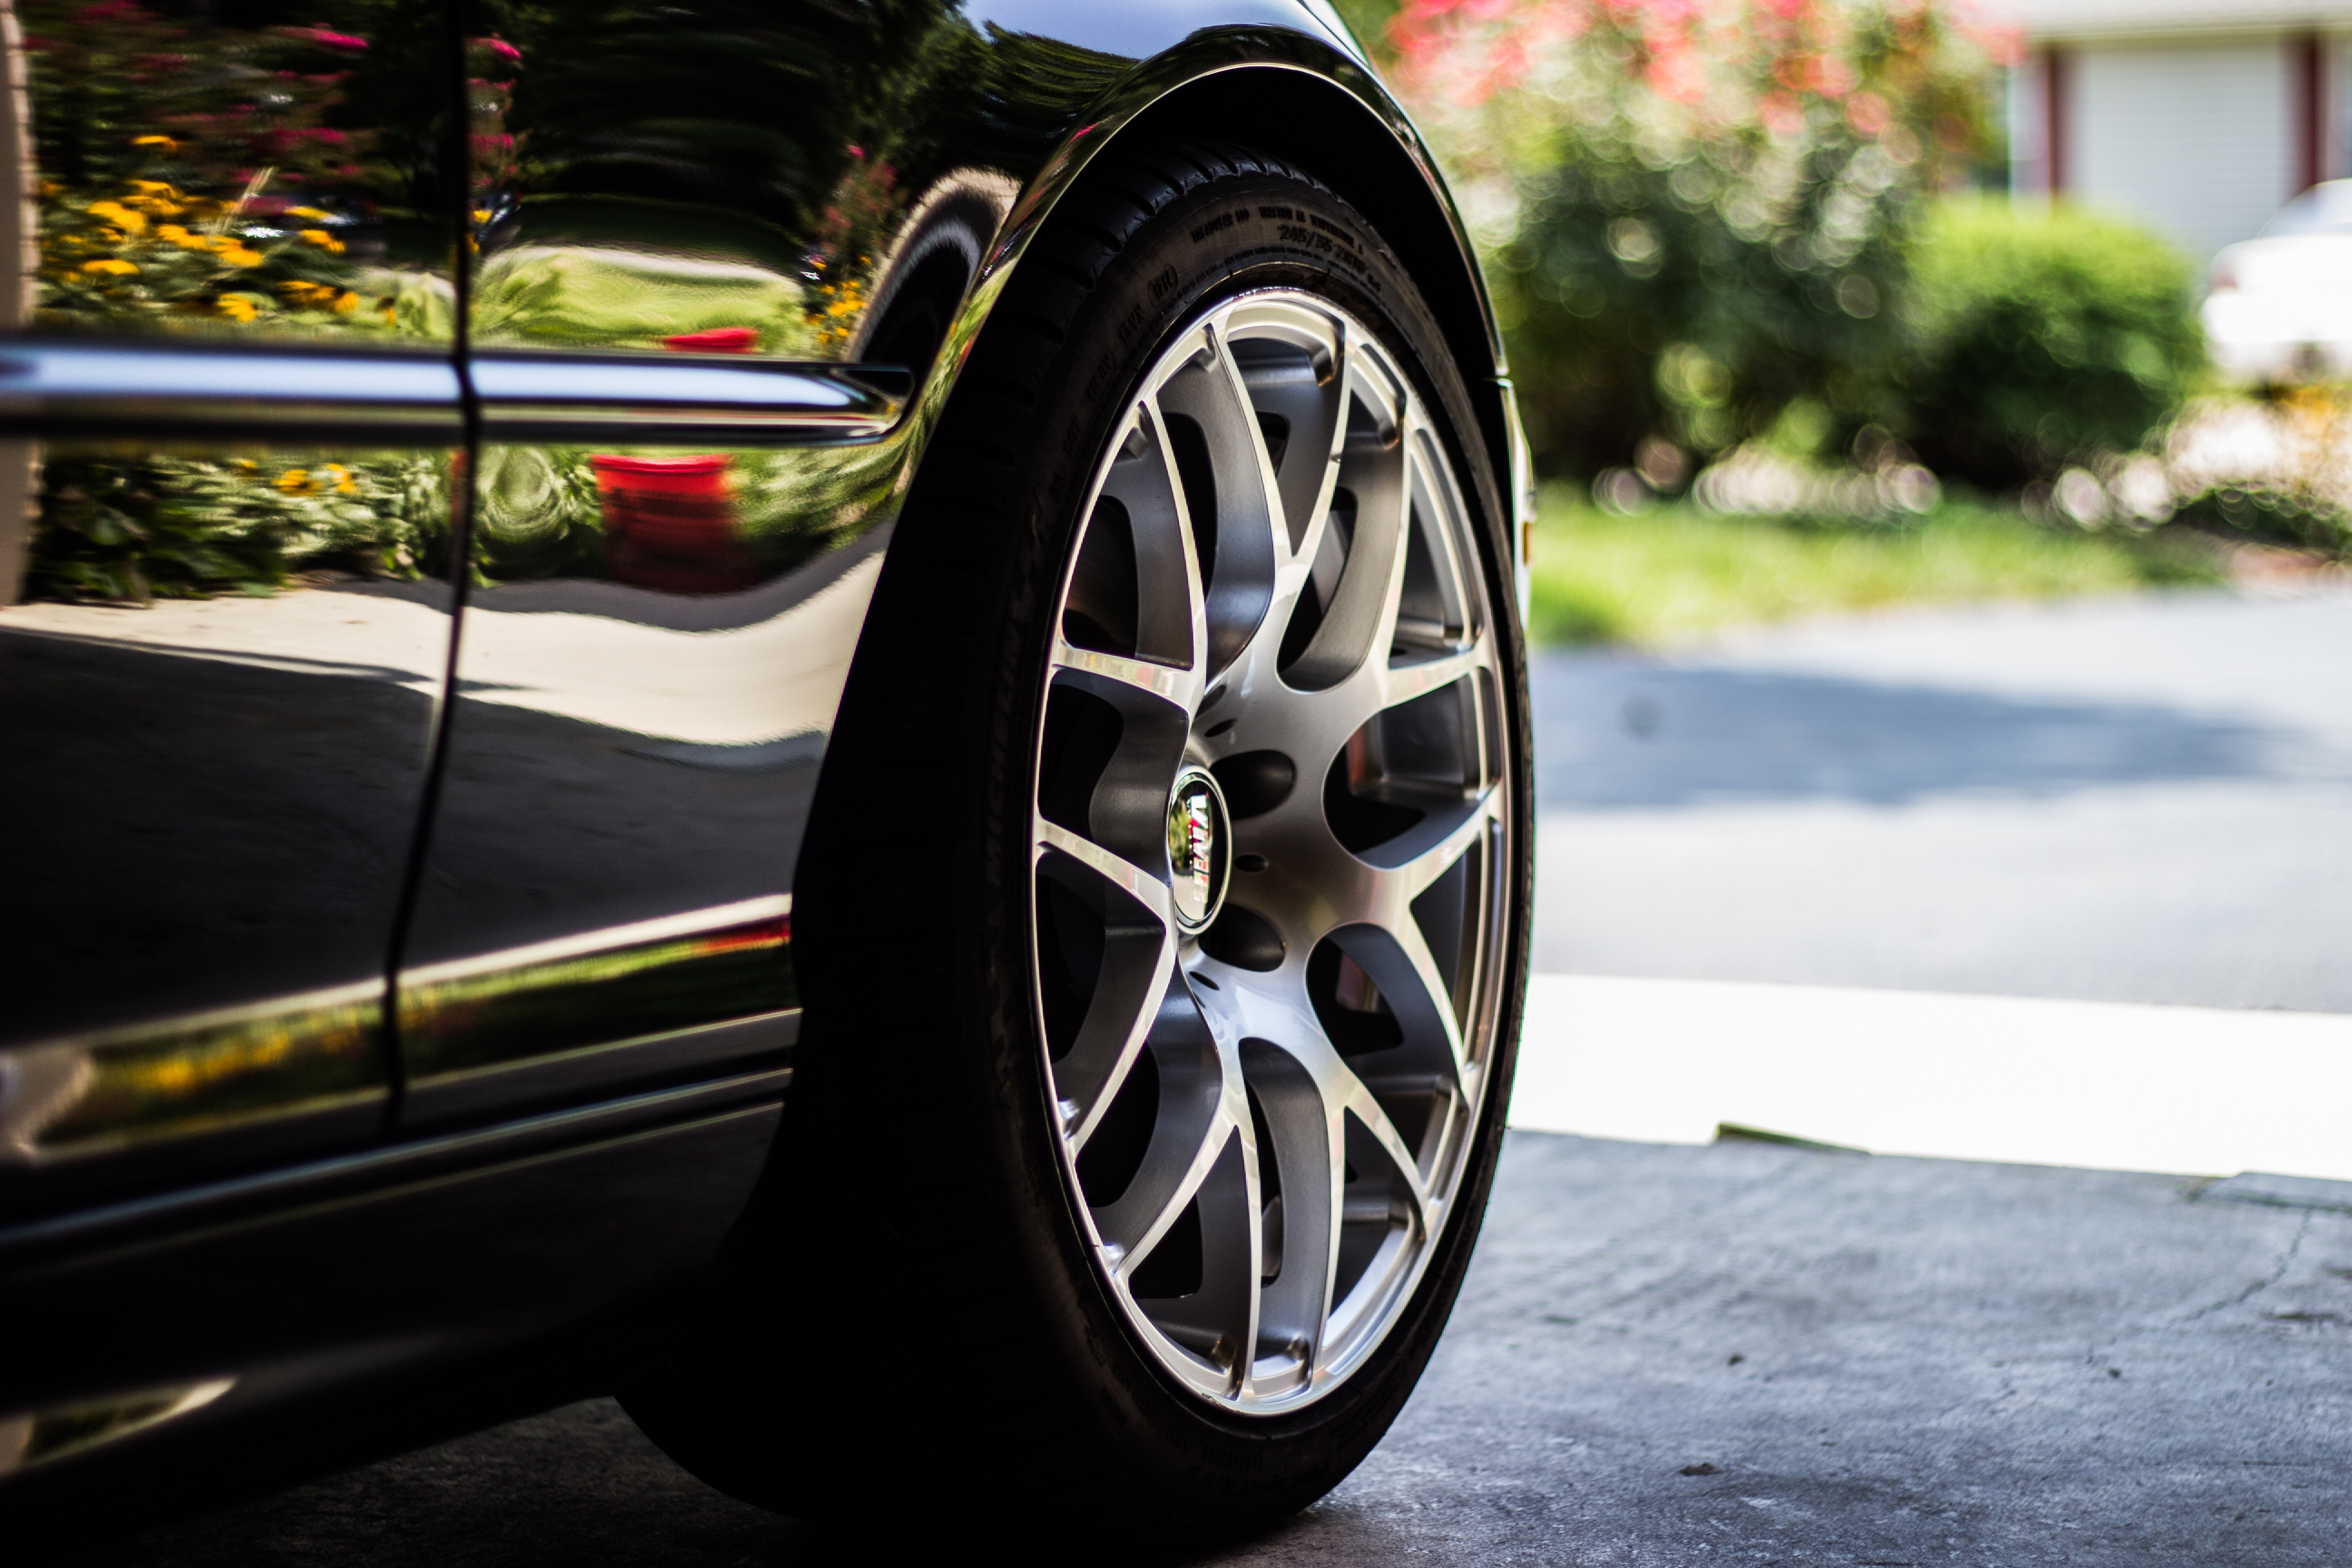 A car wheel and rim sitting on a concrete floor in a garage, the driveway visible beyond..